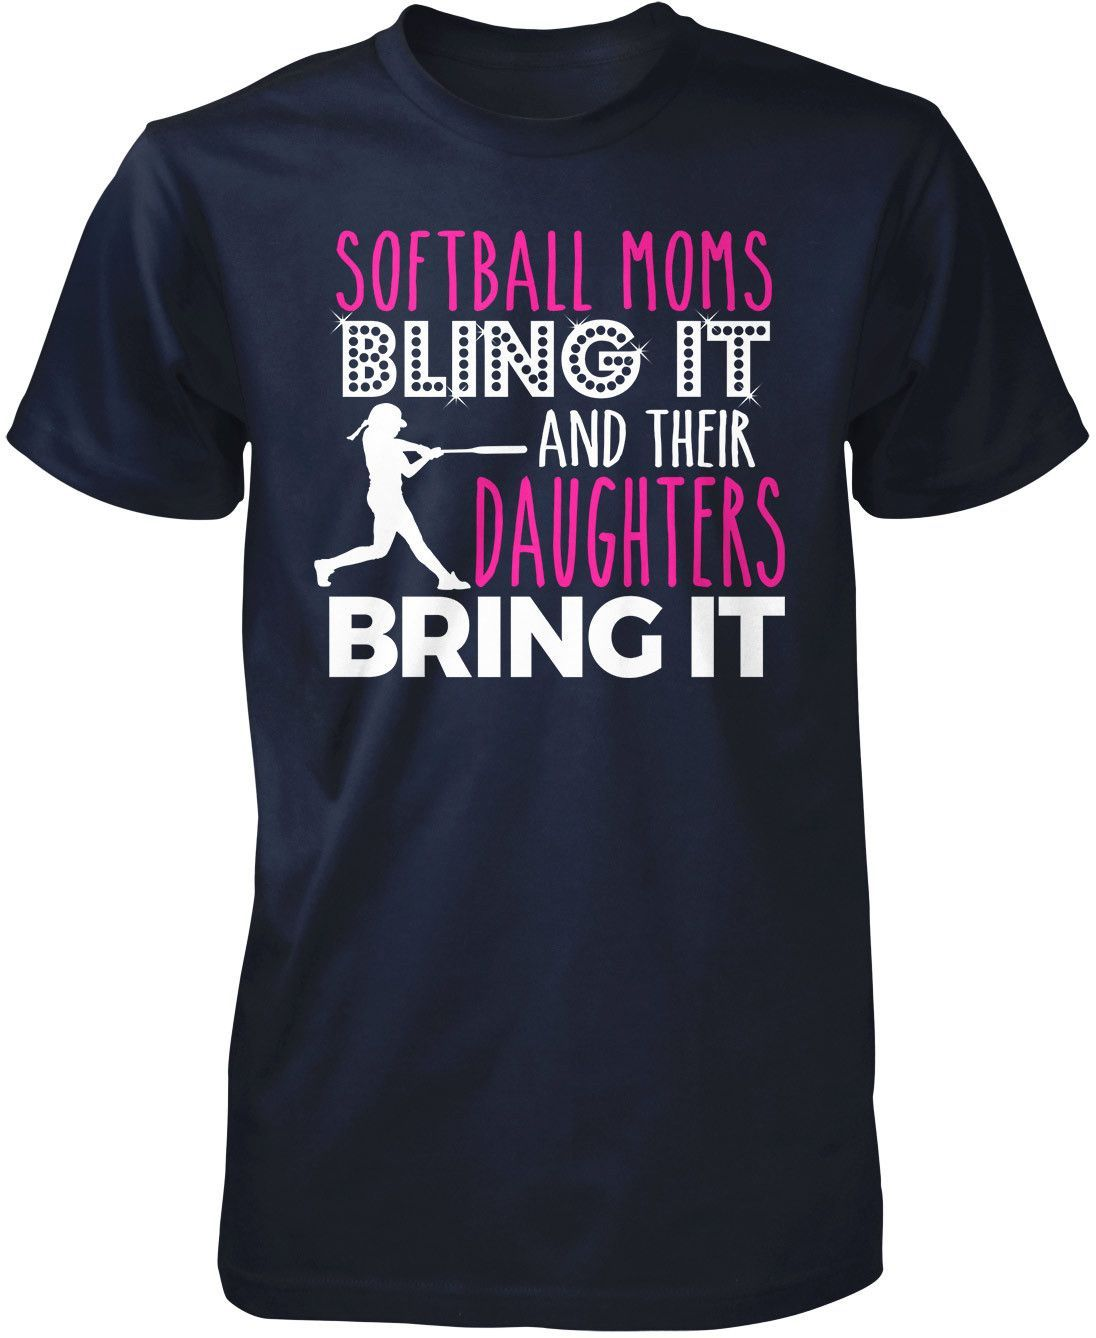 Softball Moms Bling it & Their Daughters Bring it